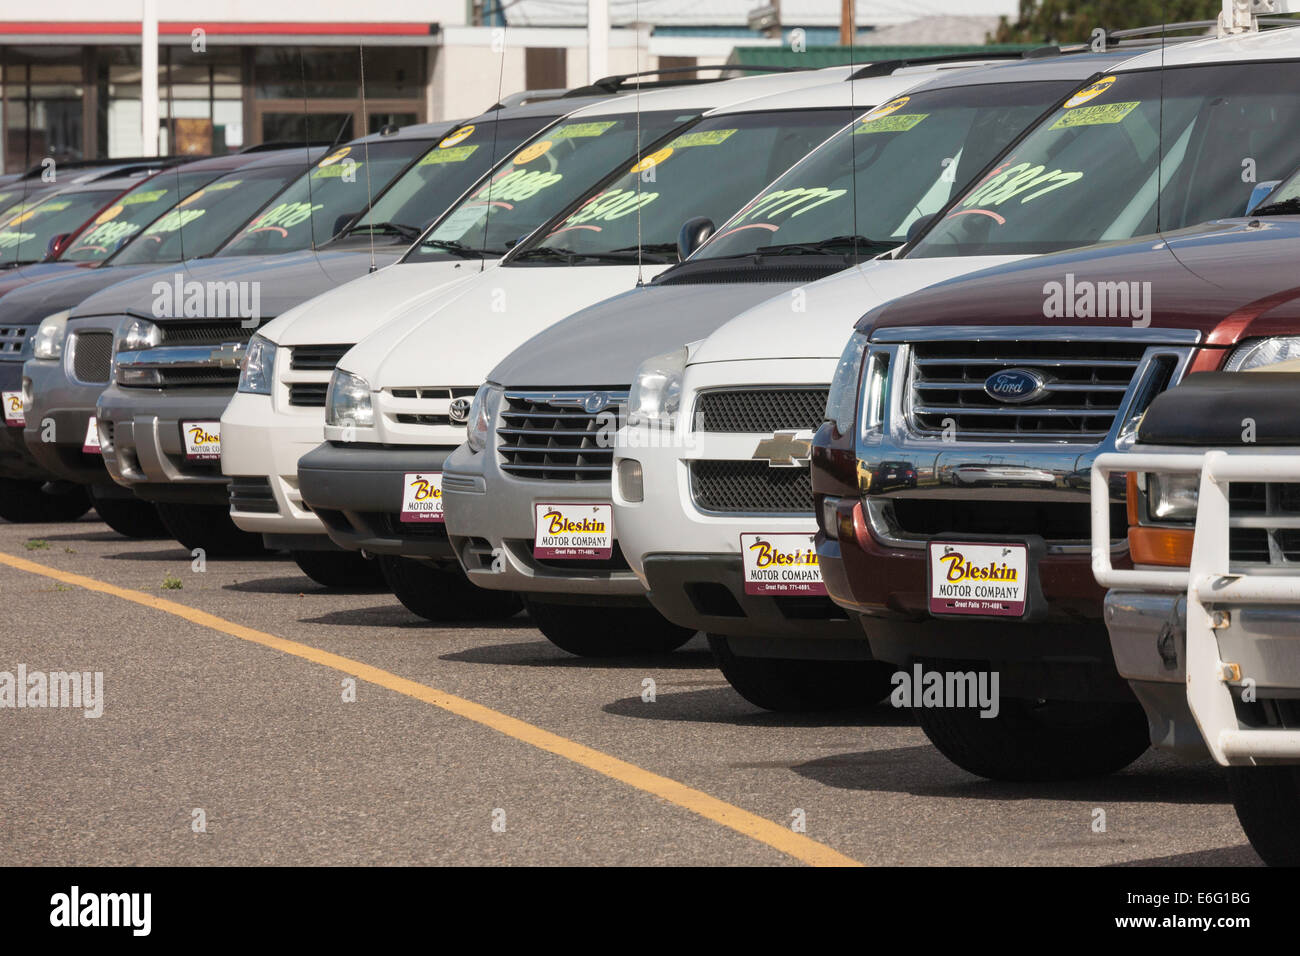 Used Cars Parked Car Dealership Usa Stock Photo 72881748 Alamy